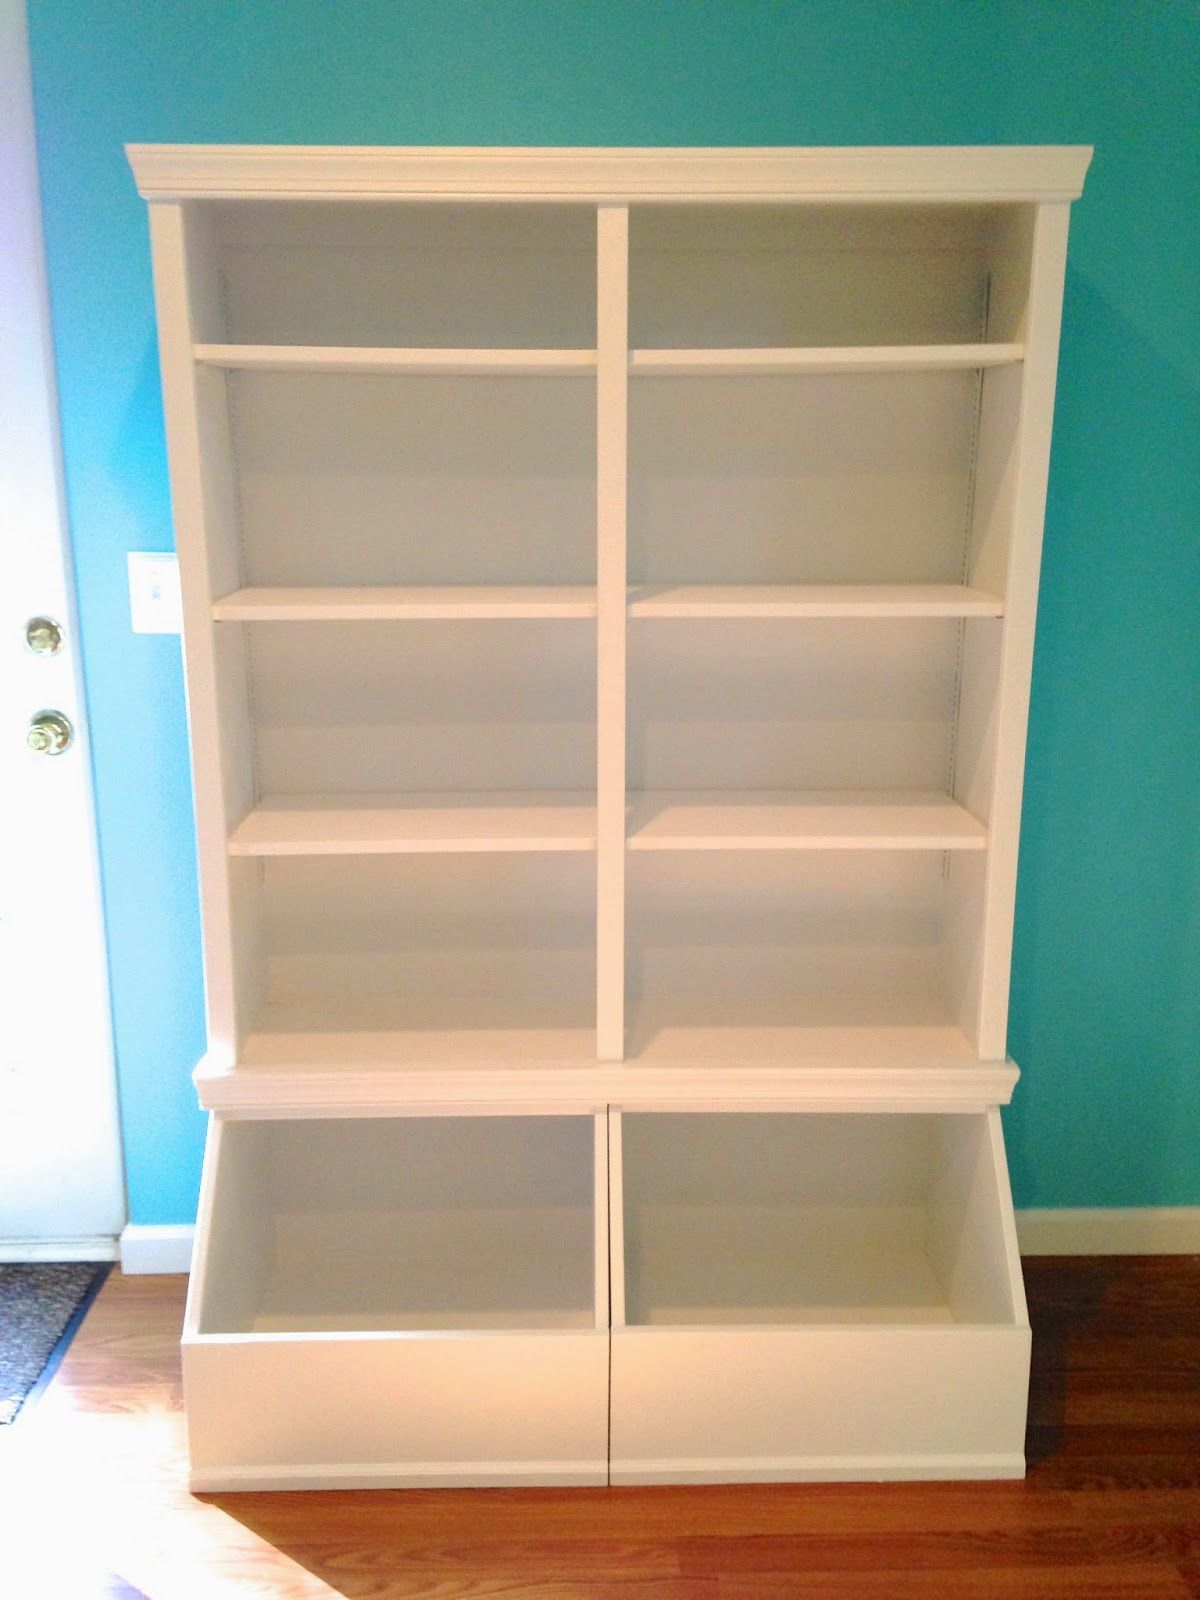 I Was Decluttering The House But I Put That On Hiatus For Two Weeks While I Built Several Pieces Of Furnitu Toy Shelves Toy Room Storage Toy Storage Shelves